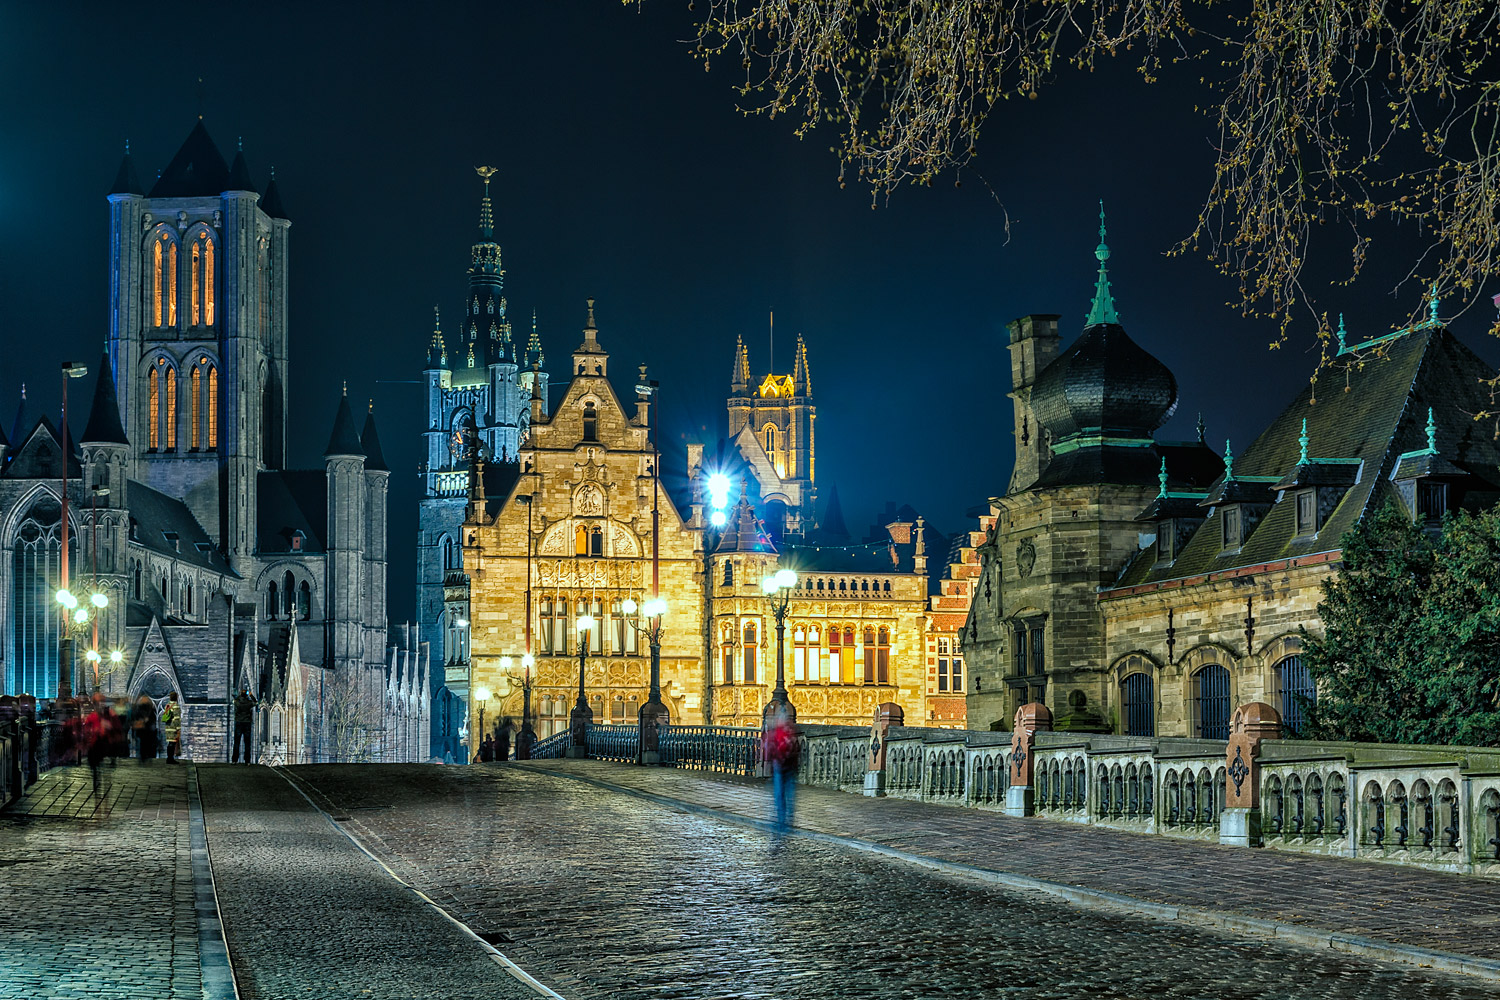 Ghent at night - 38mm   8.0 sec   f8   ISO100